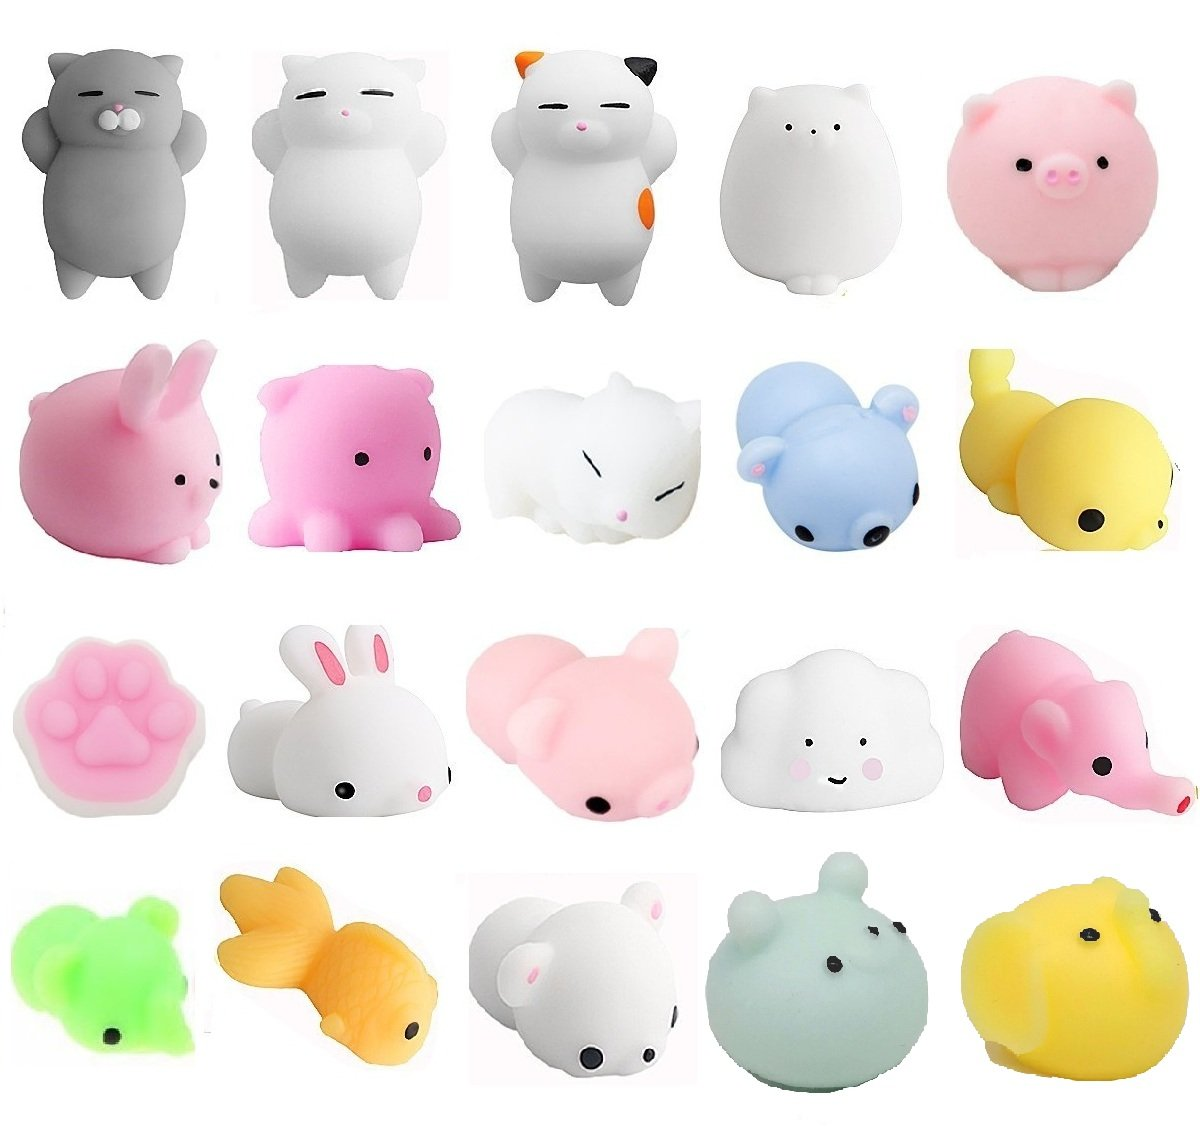 Mochi Squishy Stress Toys, Aiboshi 20 PCS Mini Squishy Animals Stress Relief Squishy Stretchy Toy, Random Color